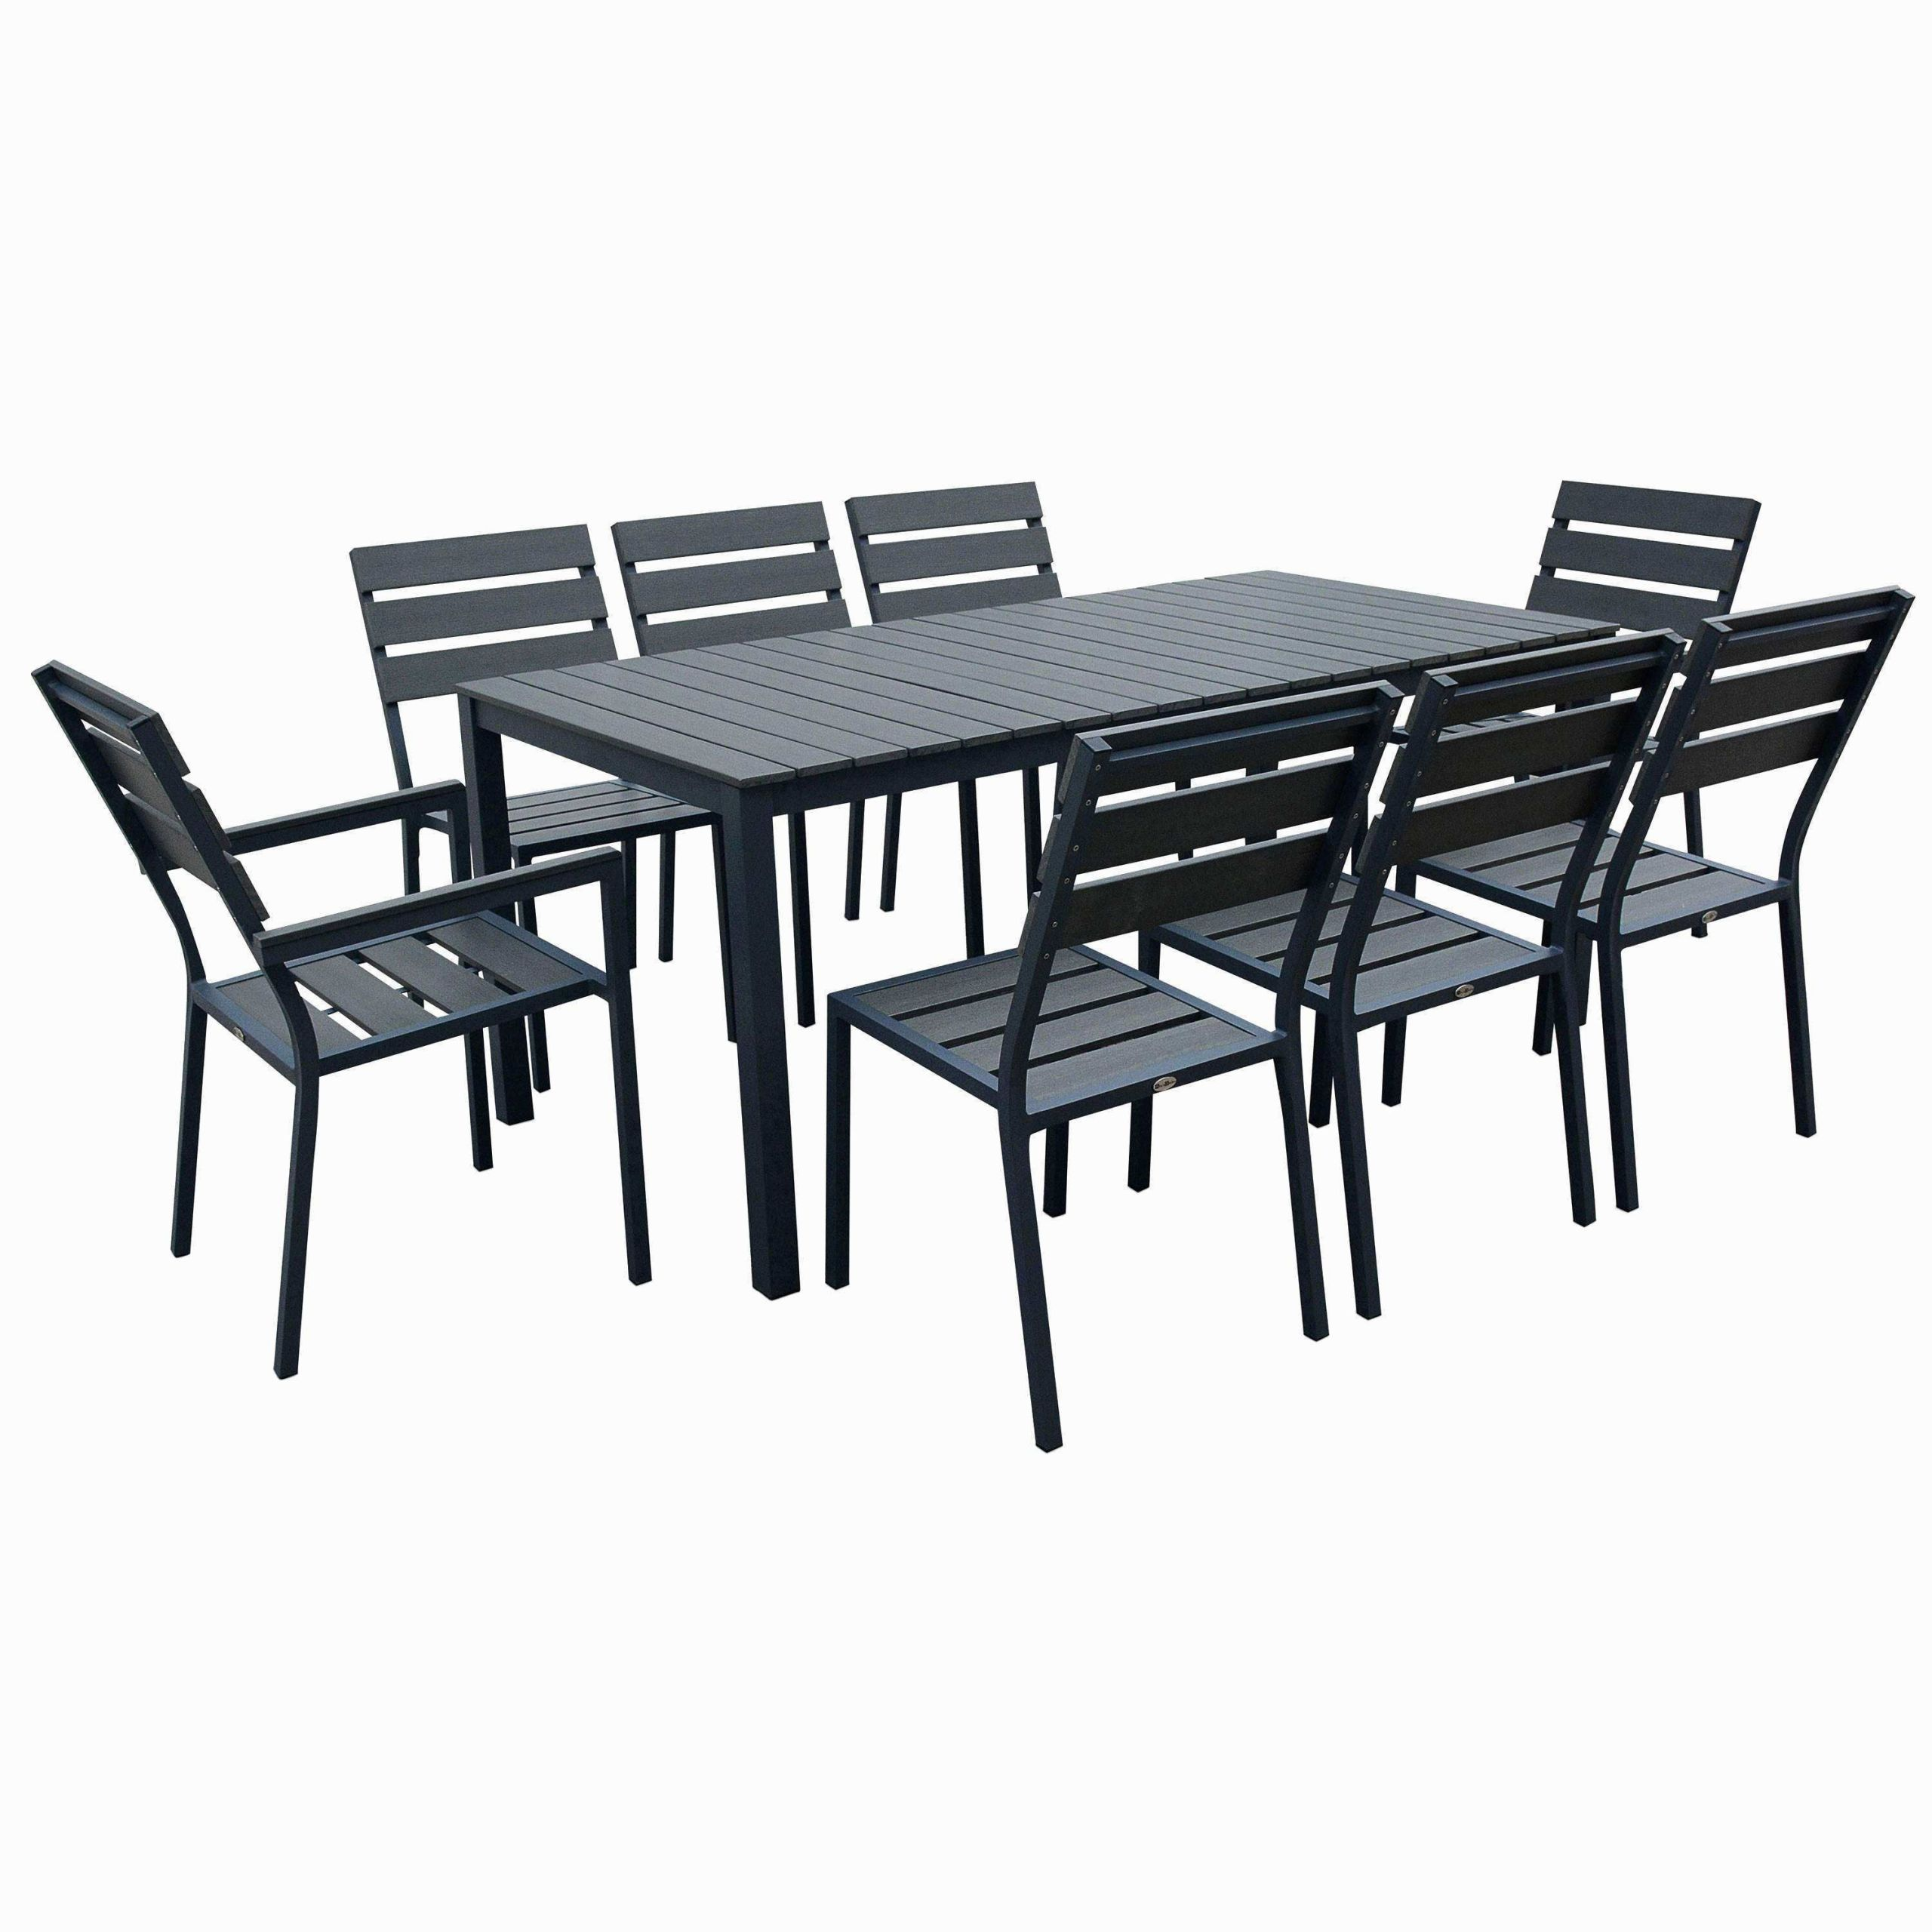 Table De Jardin Acacia Charmant Table Terrasse Pas Cher Of 24 Inspirant Table De Jardin Acacia